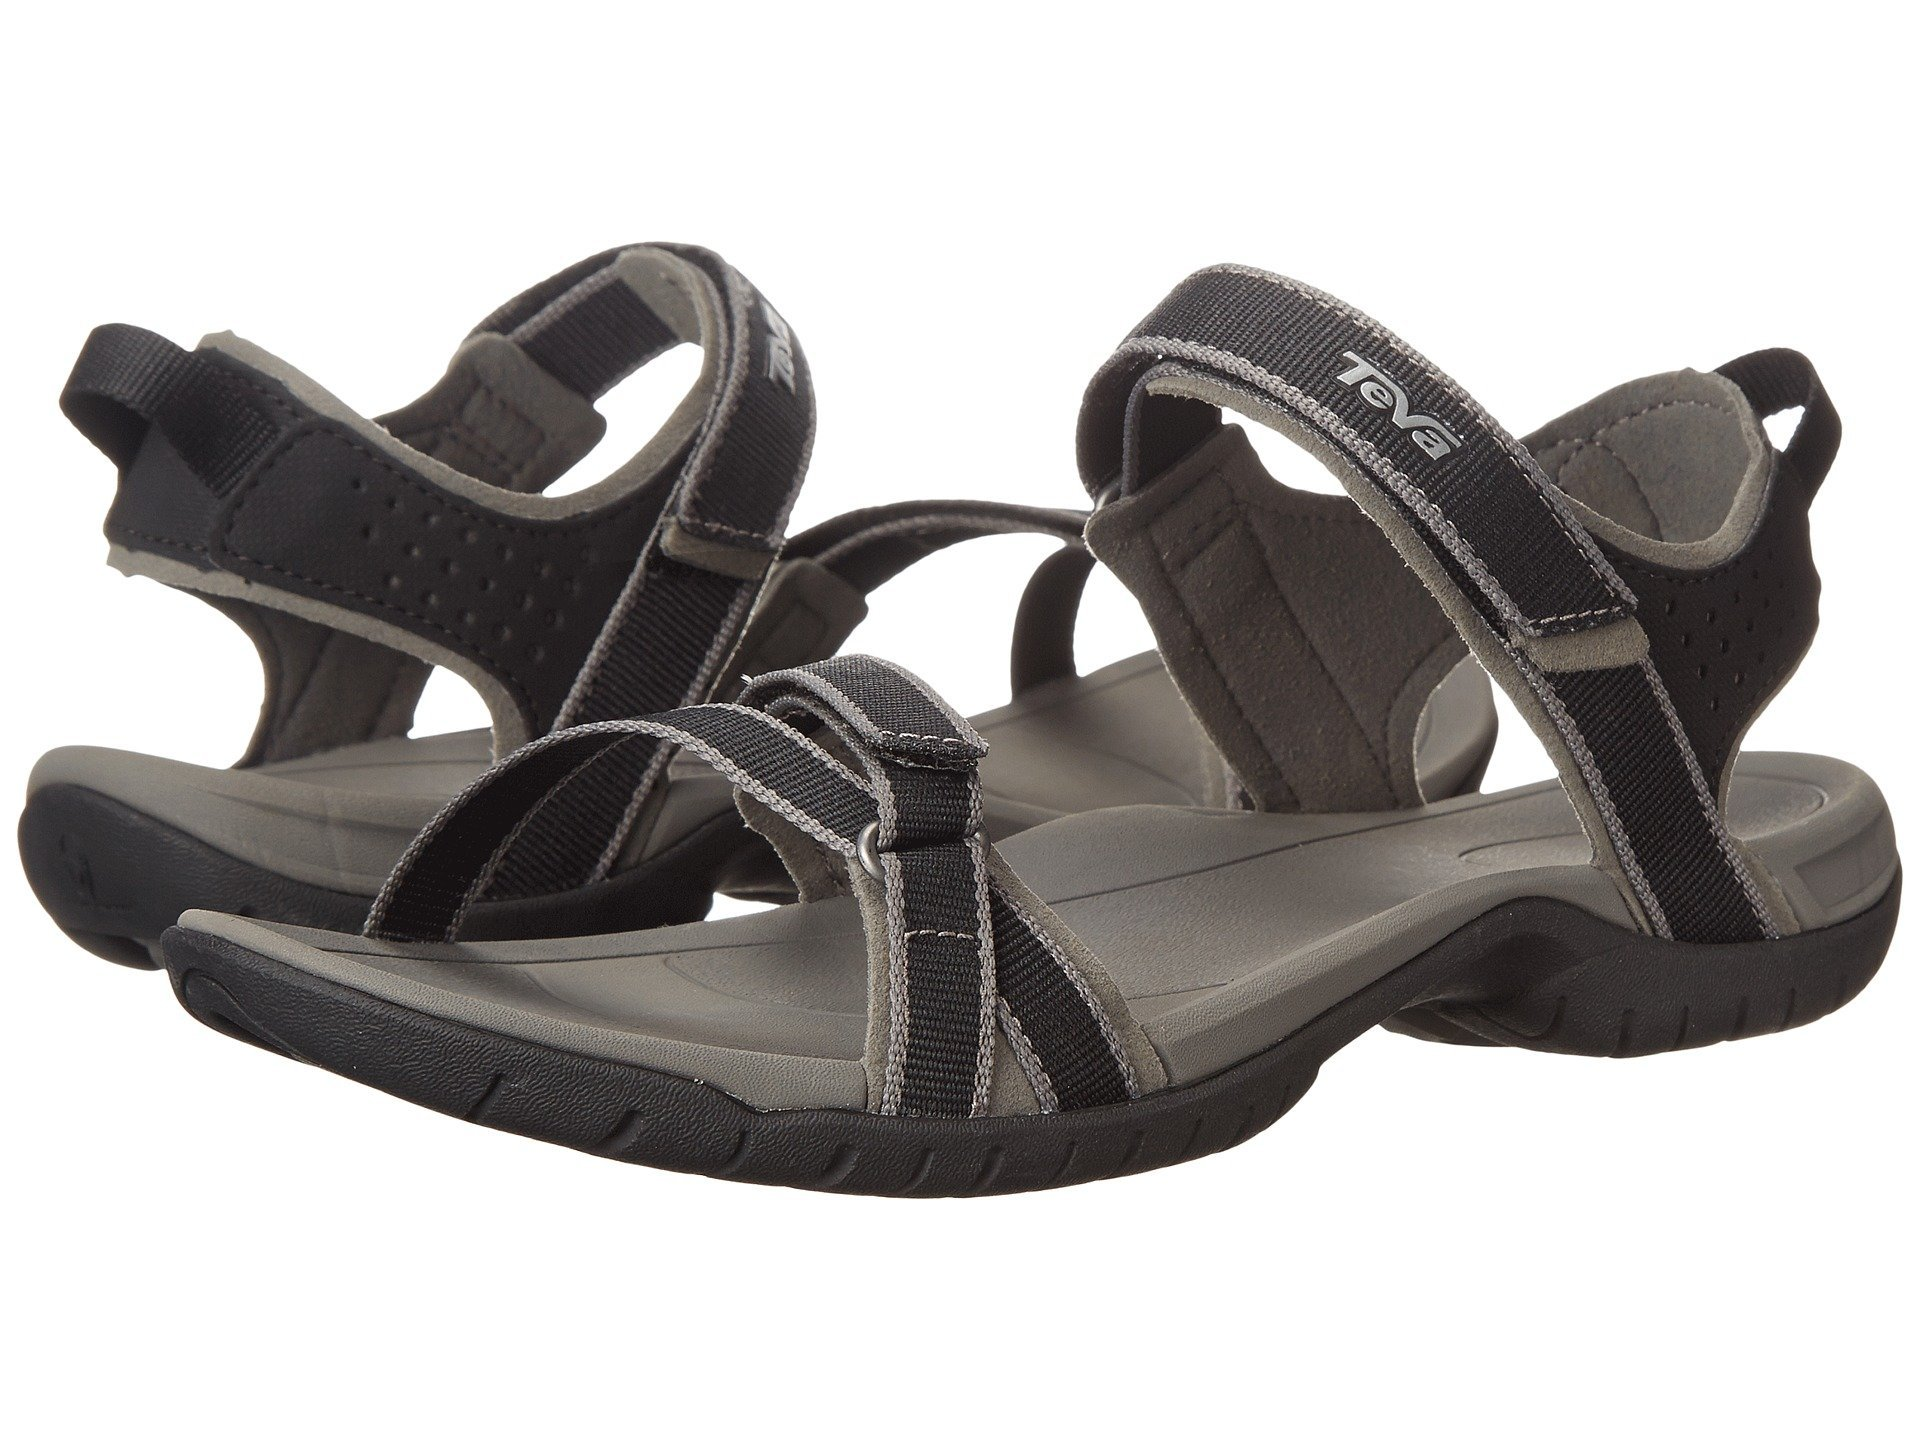 Teva Women's W Verra Sandal (7 M US, Black/Grey)